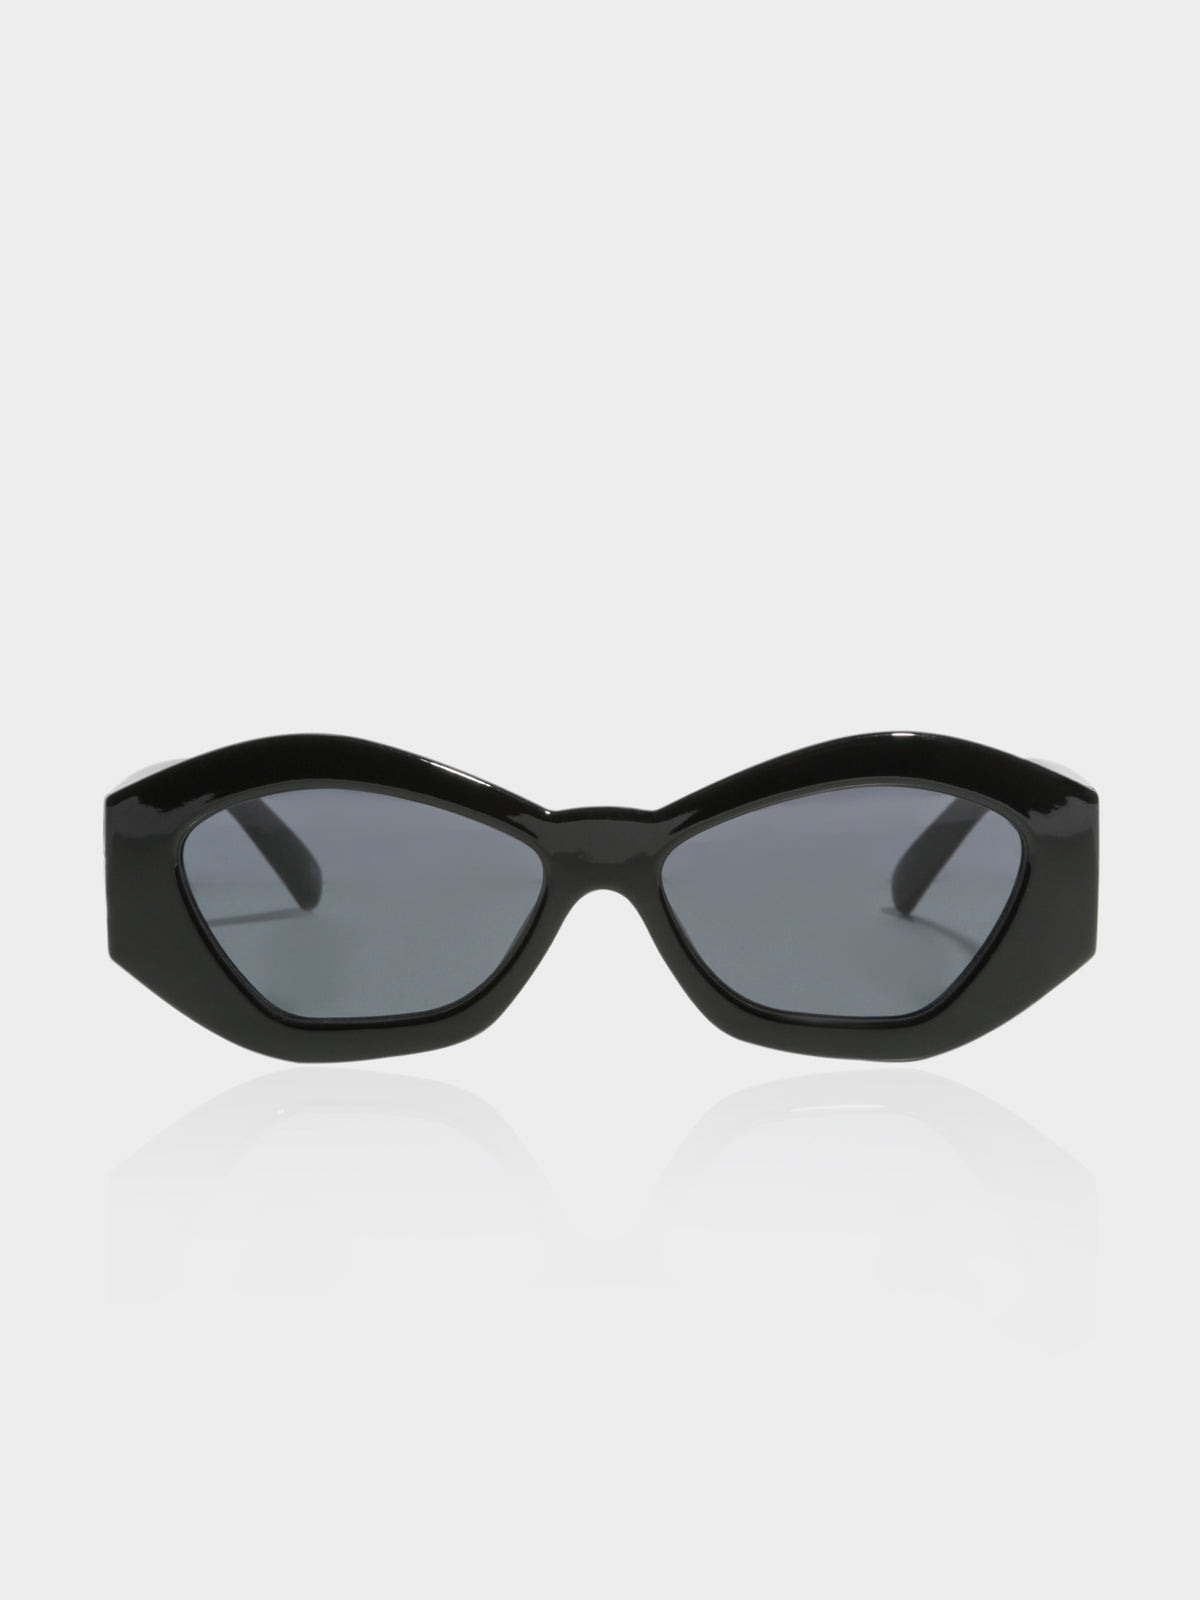 The Ginchiest Sunglasses in Black